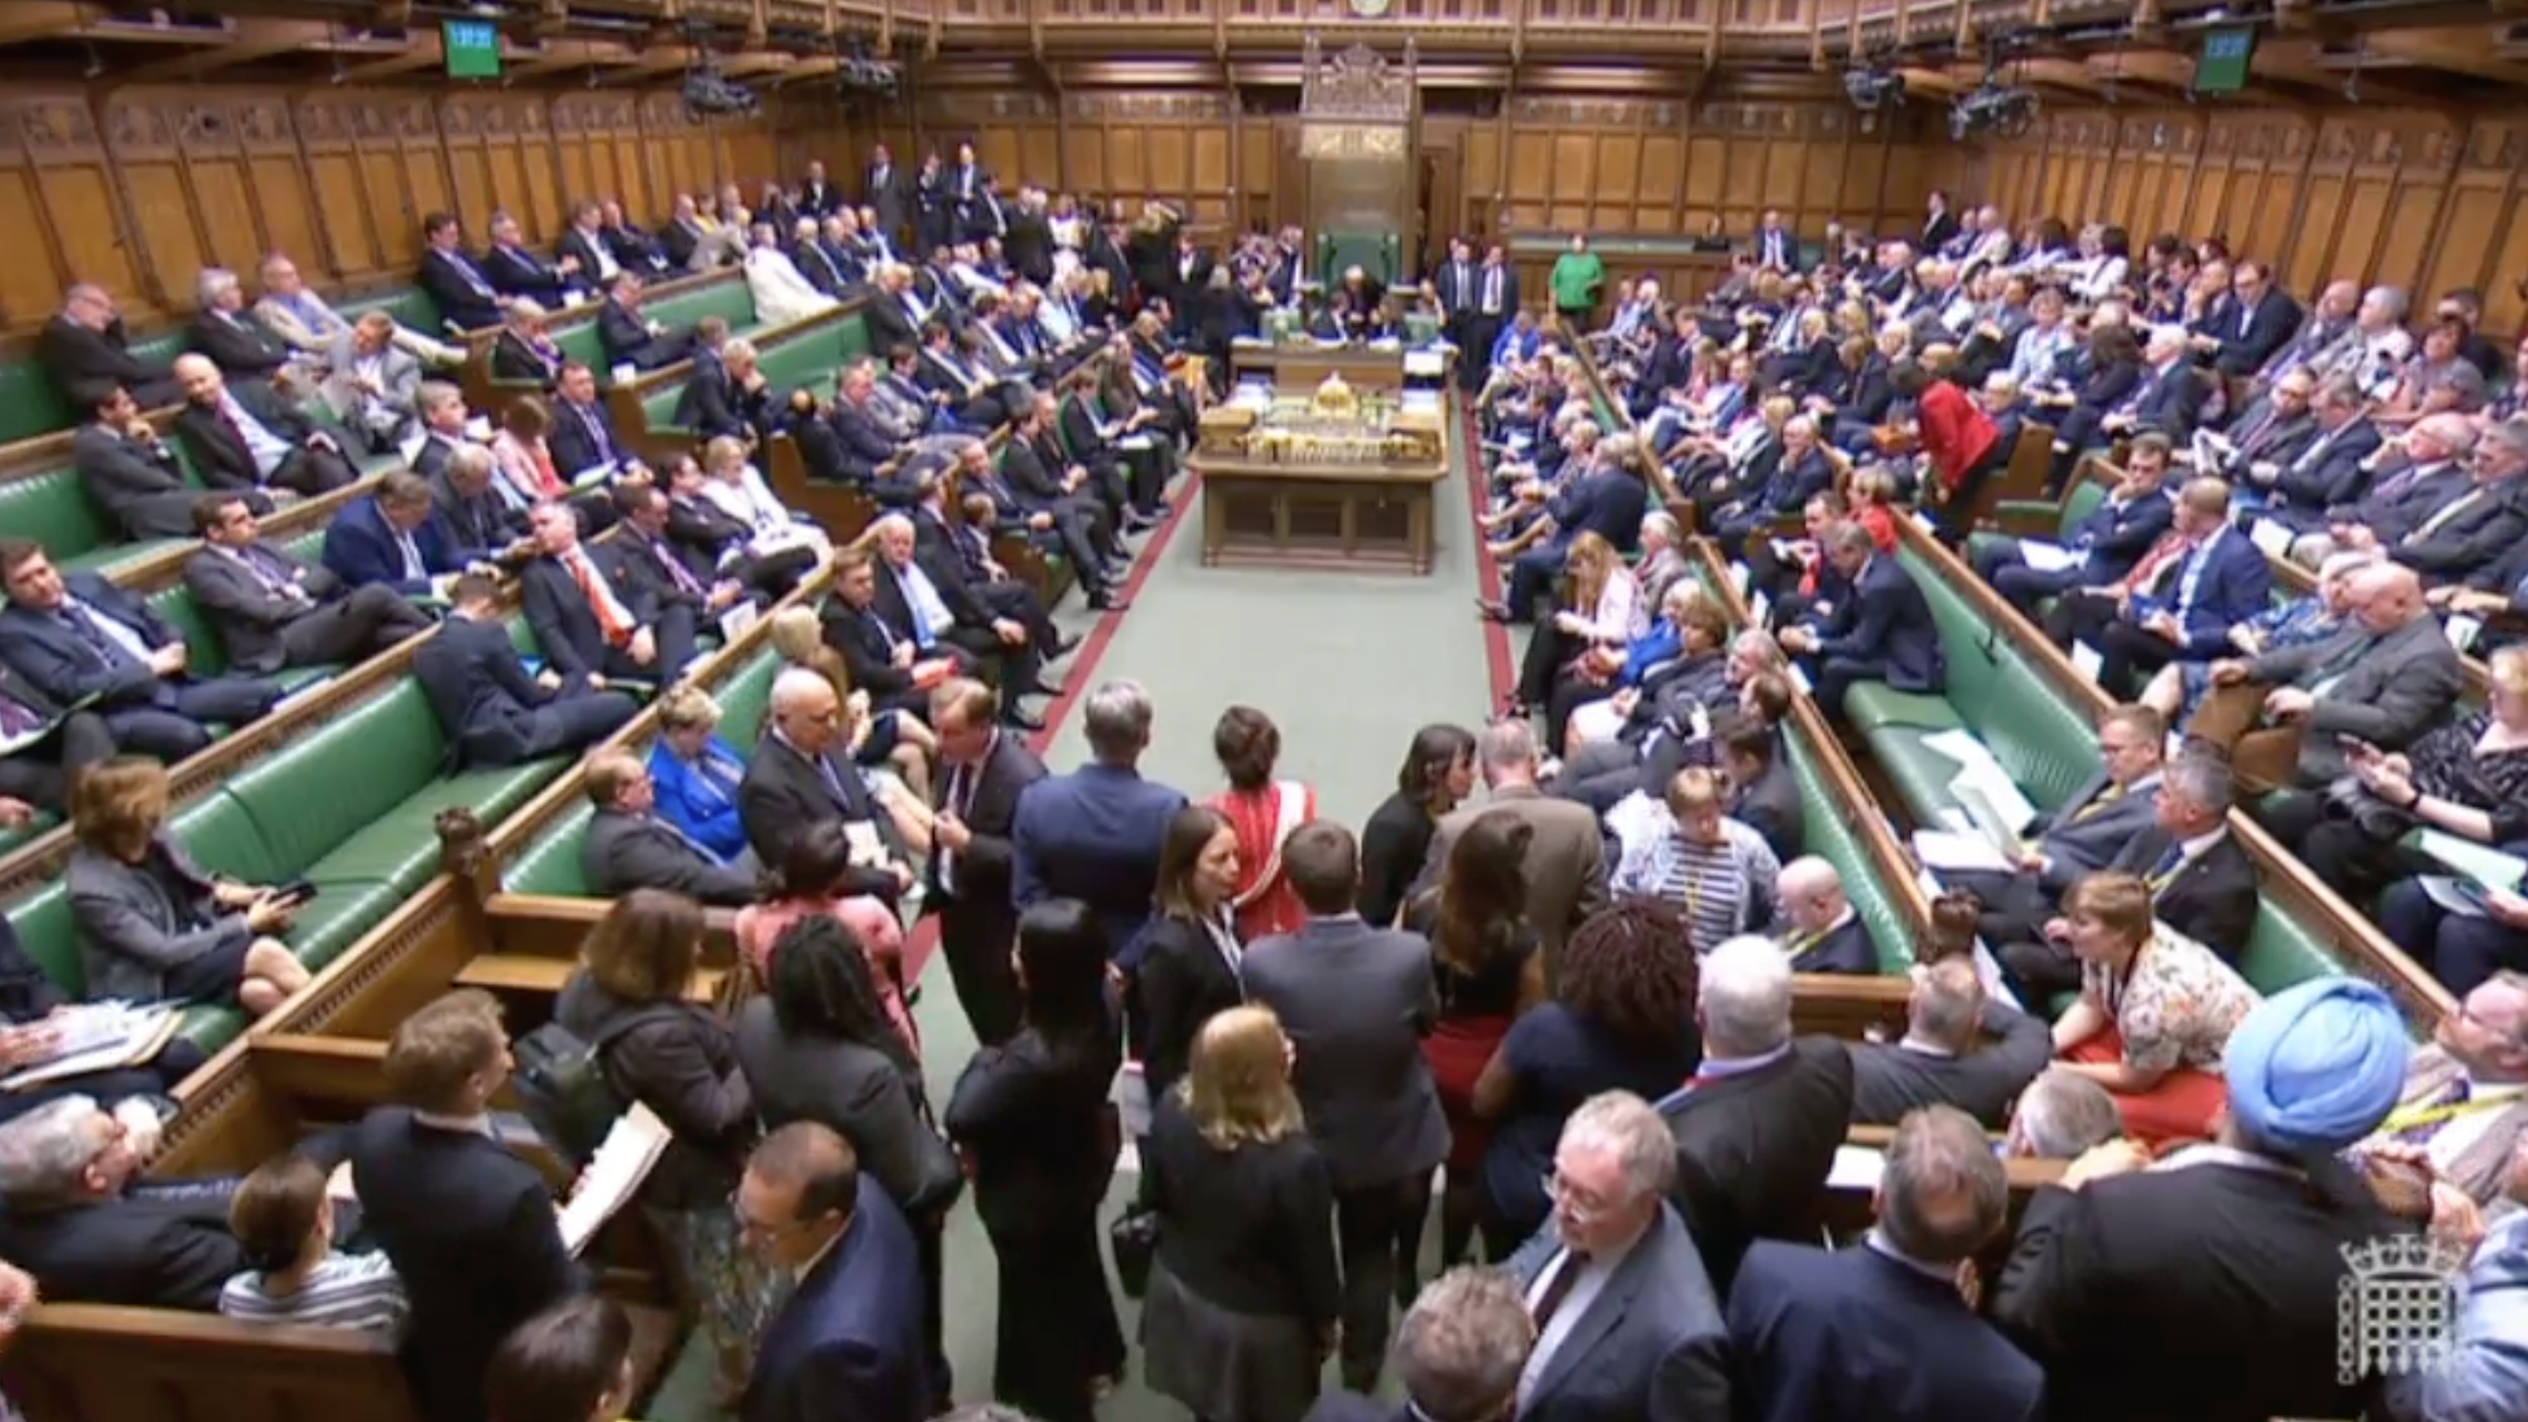 MPs Vote To Make It More Difficult For The New Prime Minister To Suspend Parliament